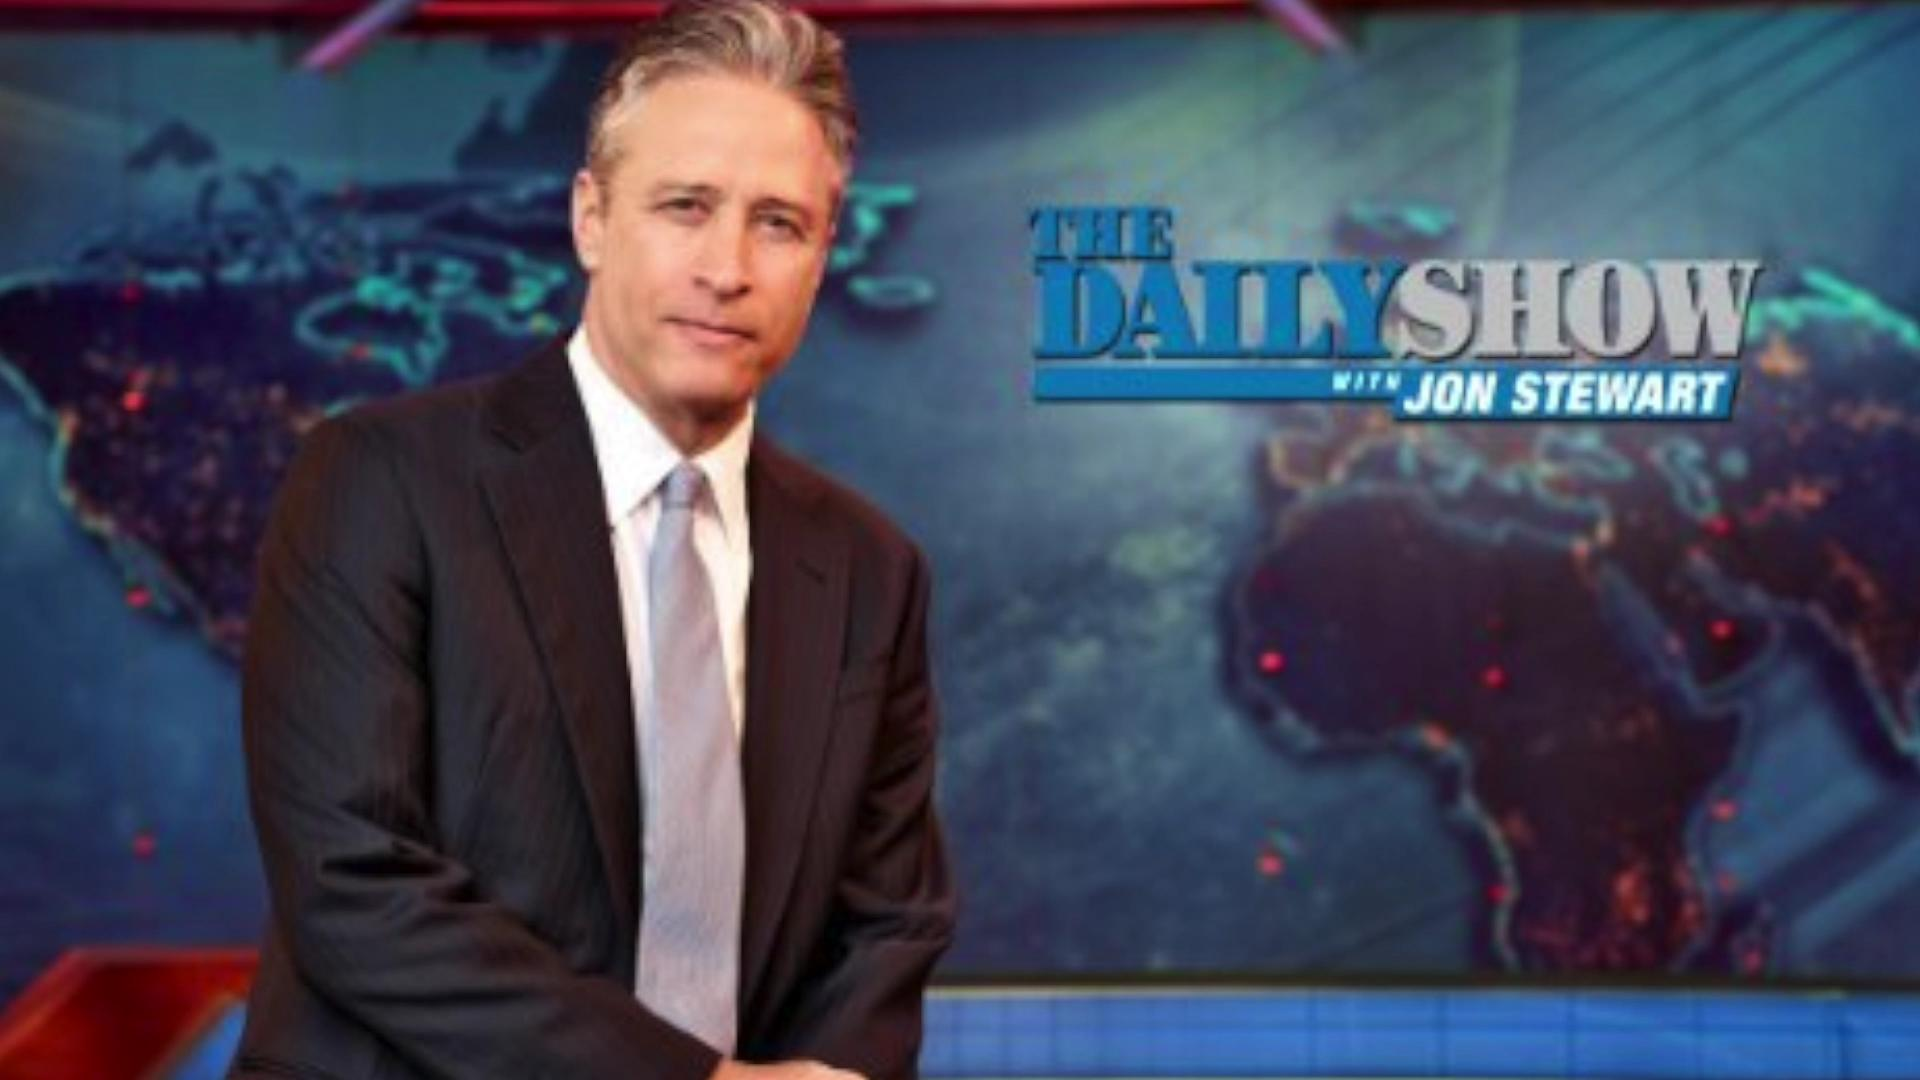 Comedy Central bids farewell to Jon Stewart